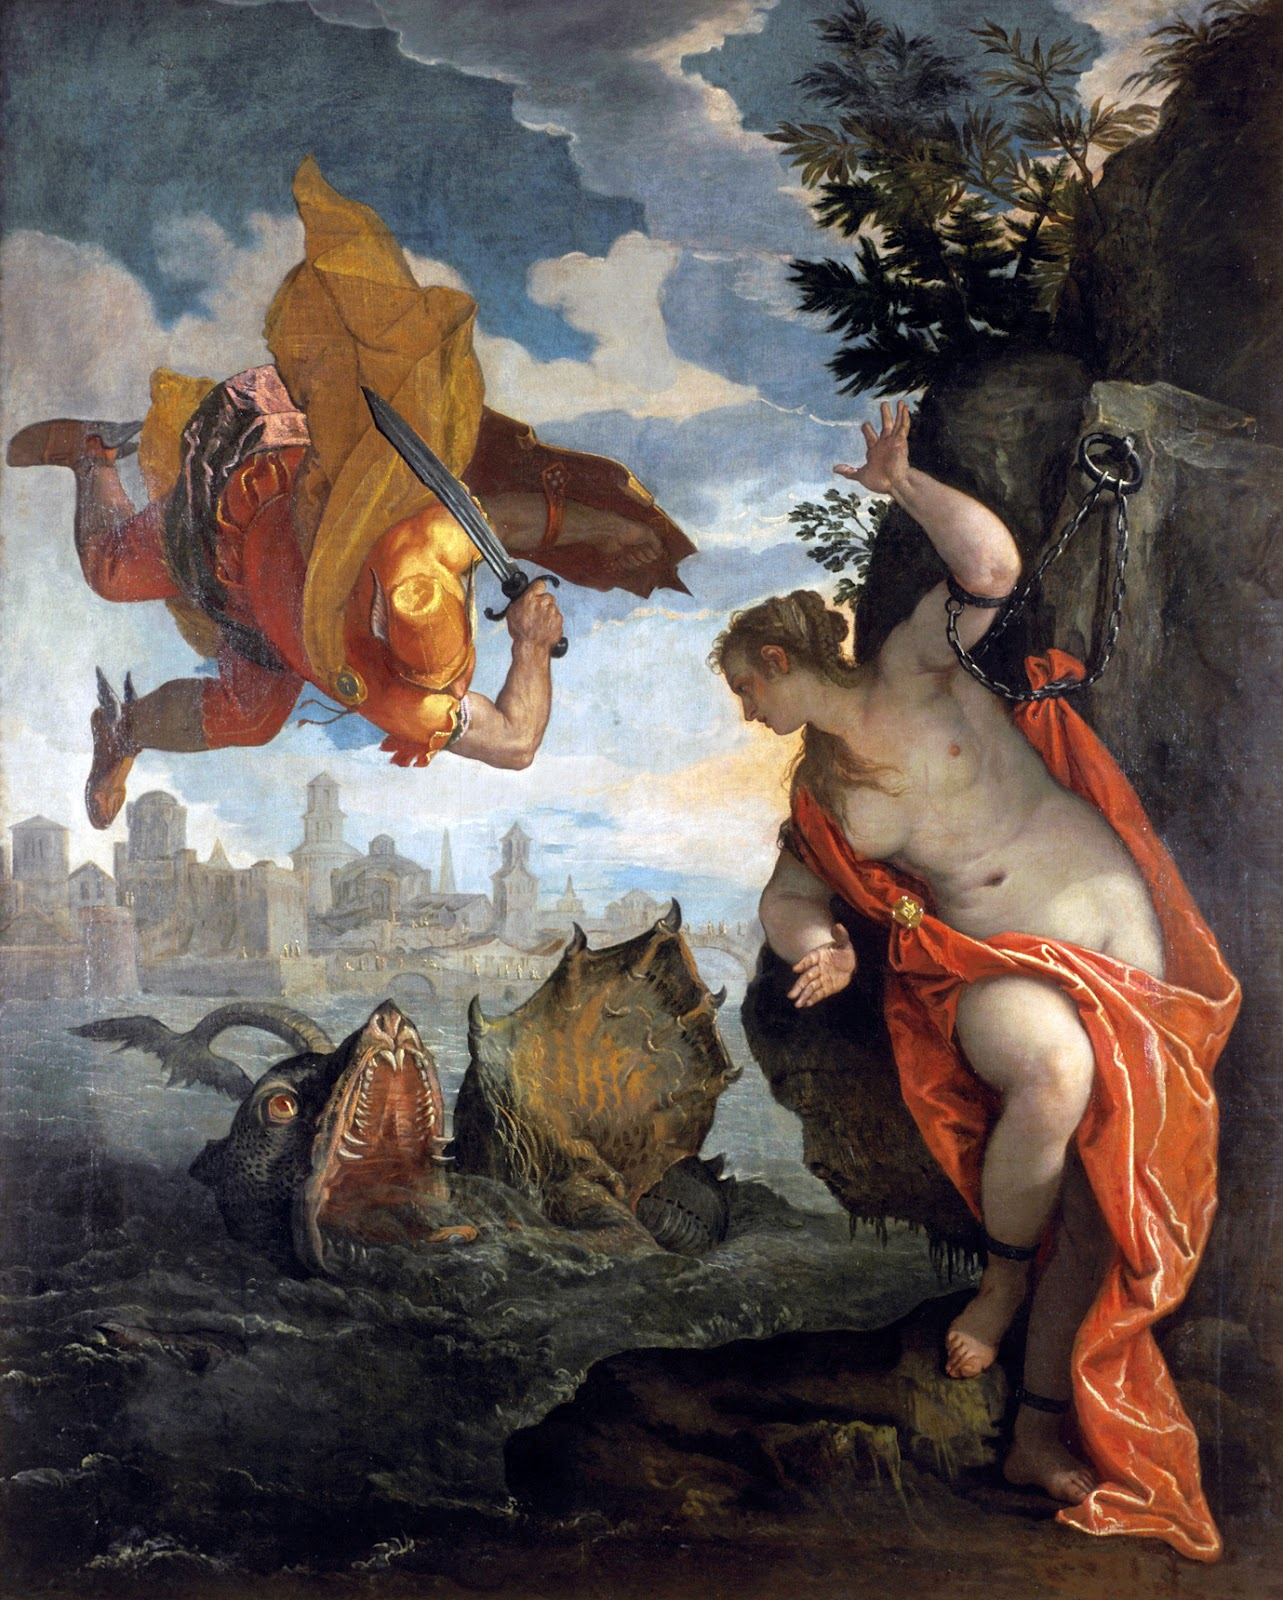 http://3.bp.blogspot.com/-hSH8GD94YuI/T4R7xb06DDI/AAAAAAAABEw/c7q0mtK1_eQ/s1600/Paolo+Veronese--Perseus+Rescuing+Andromeda.1576-78.jpg